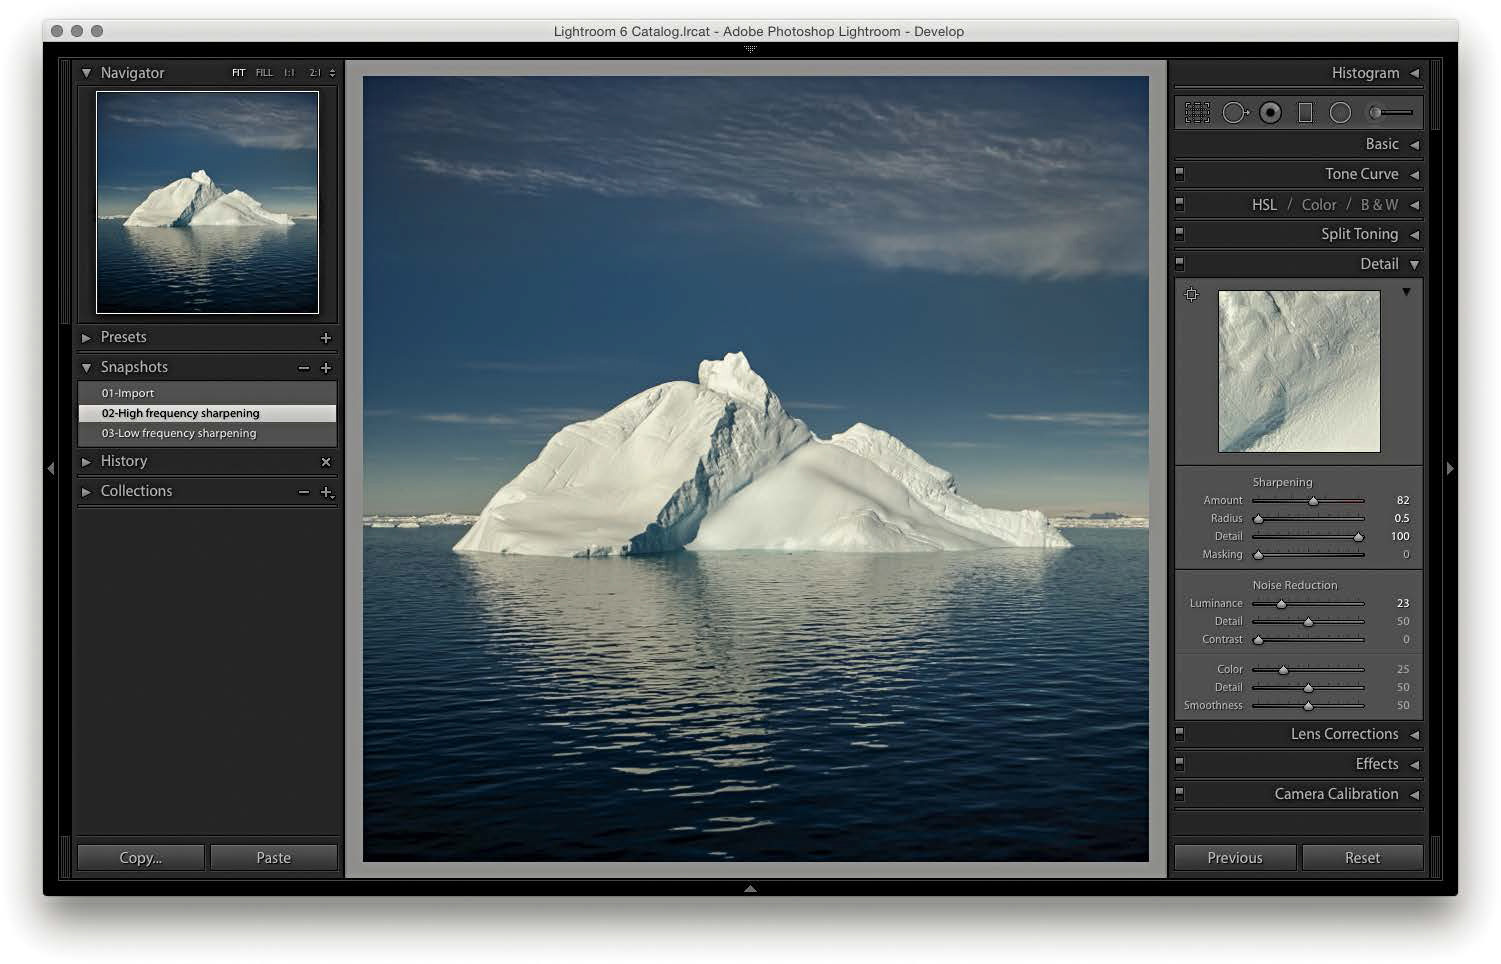 Maximizing Image Detail in Lightroom or Camera Raw